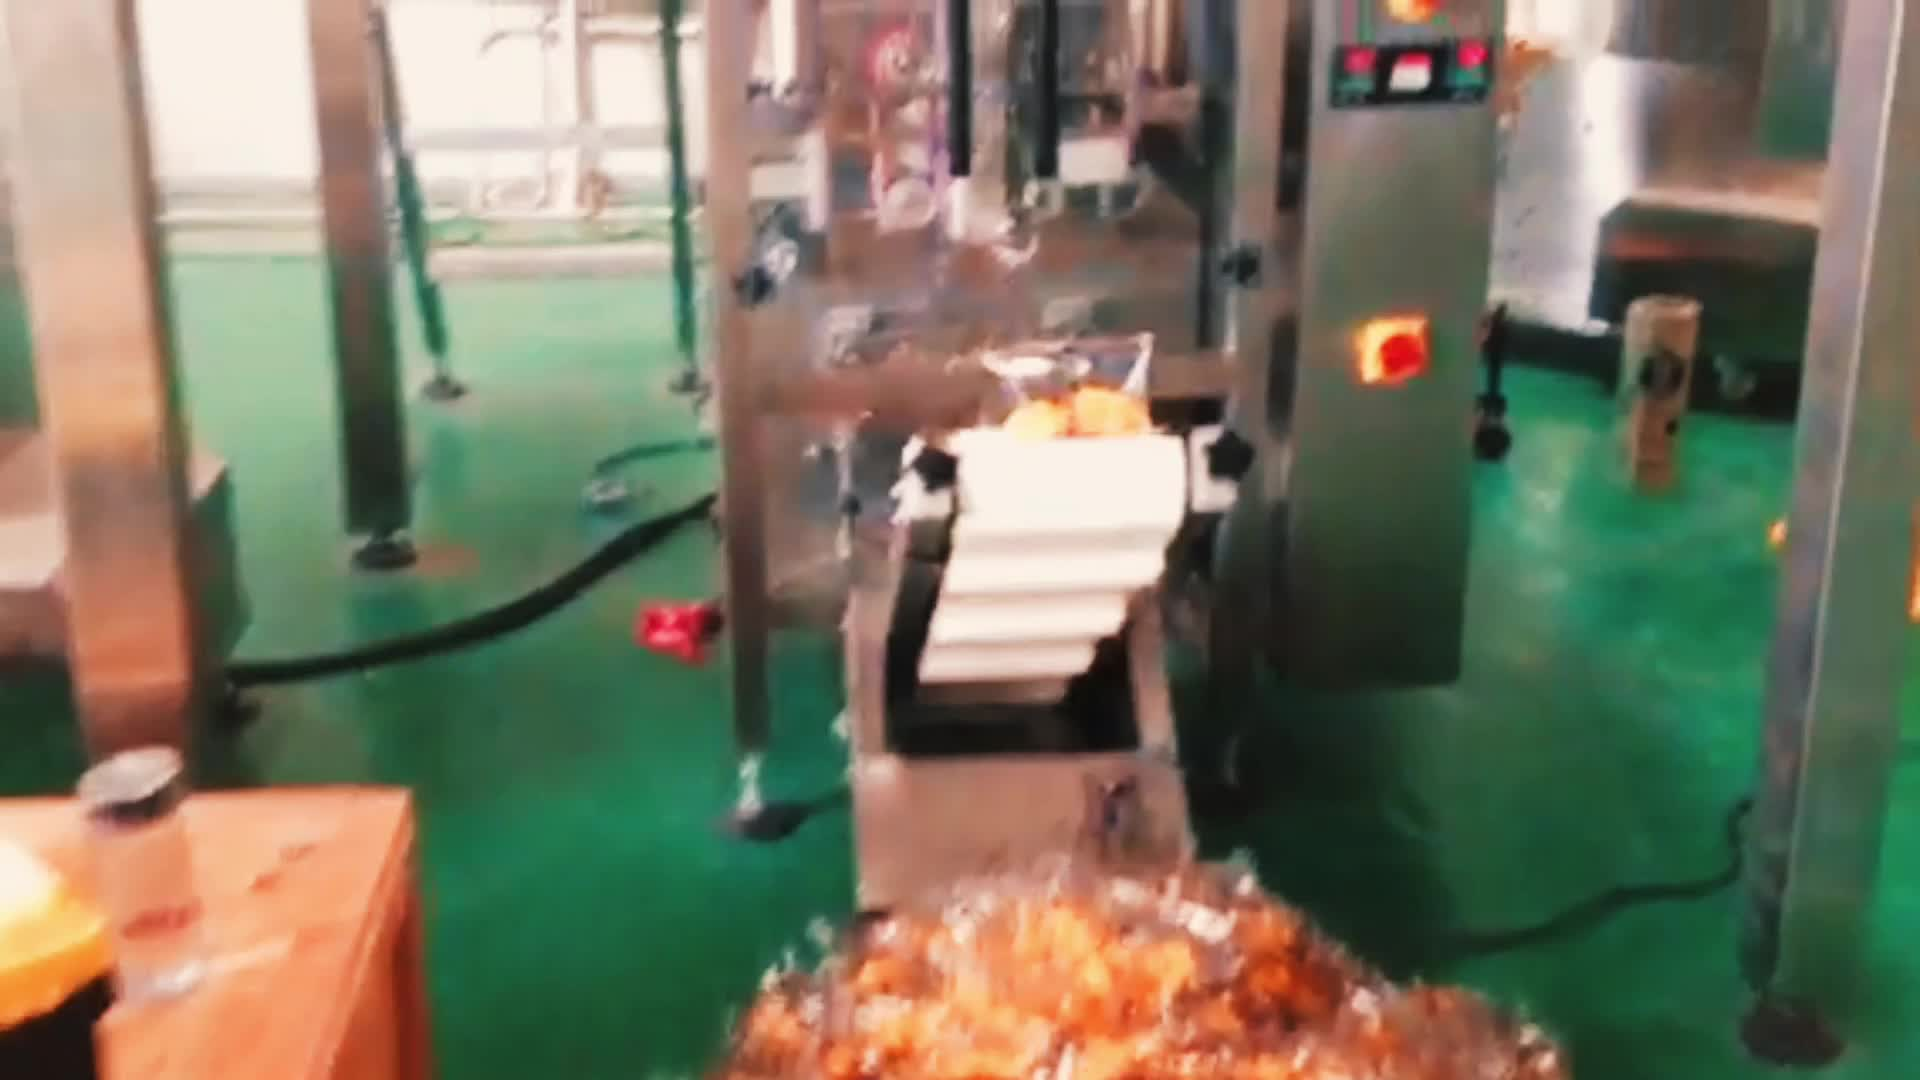 Vffs date printing plastic bag chips peanuts automatic packaging machine